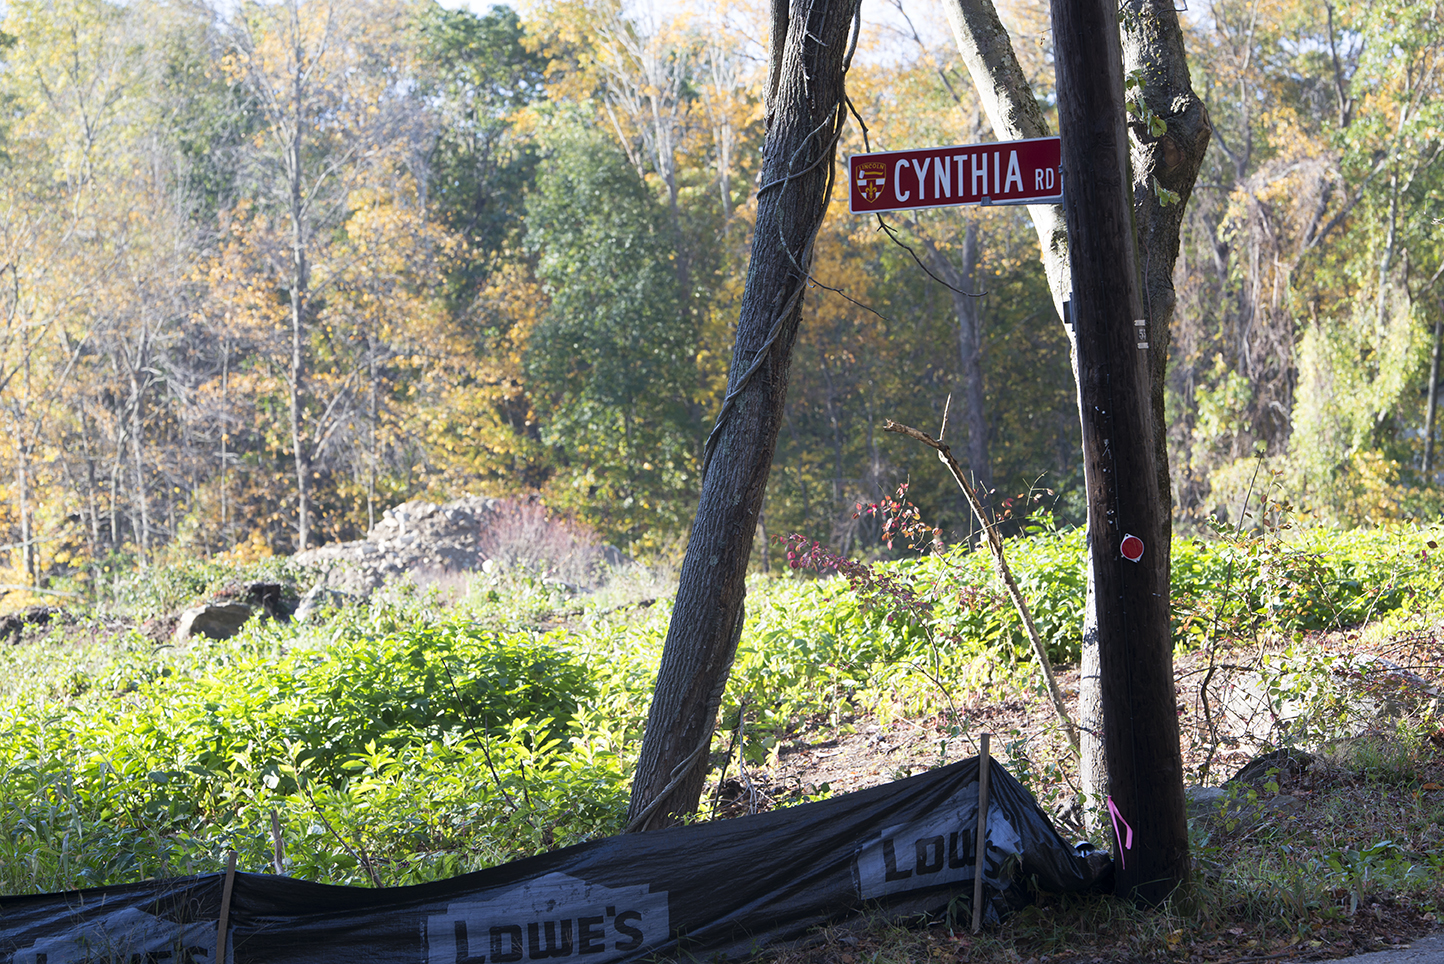 This 2-acre lot on Cynthia Road in Lincoln, R.I., will soon be home to two houses. Across the street is a historic spring and an old homestead. (Joanna Detz/ecoRI News)